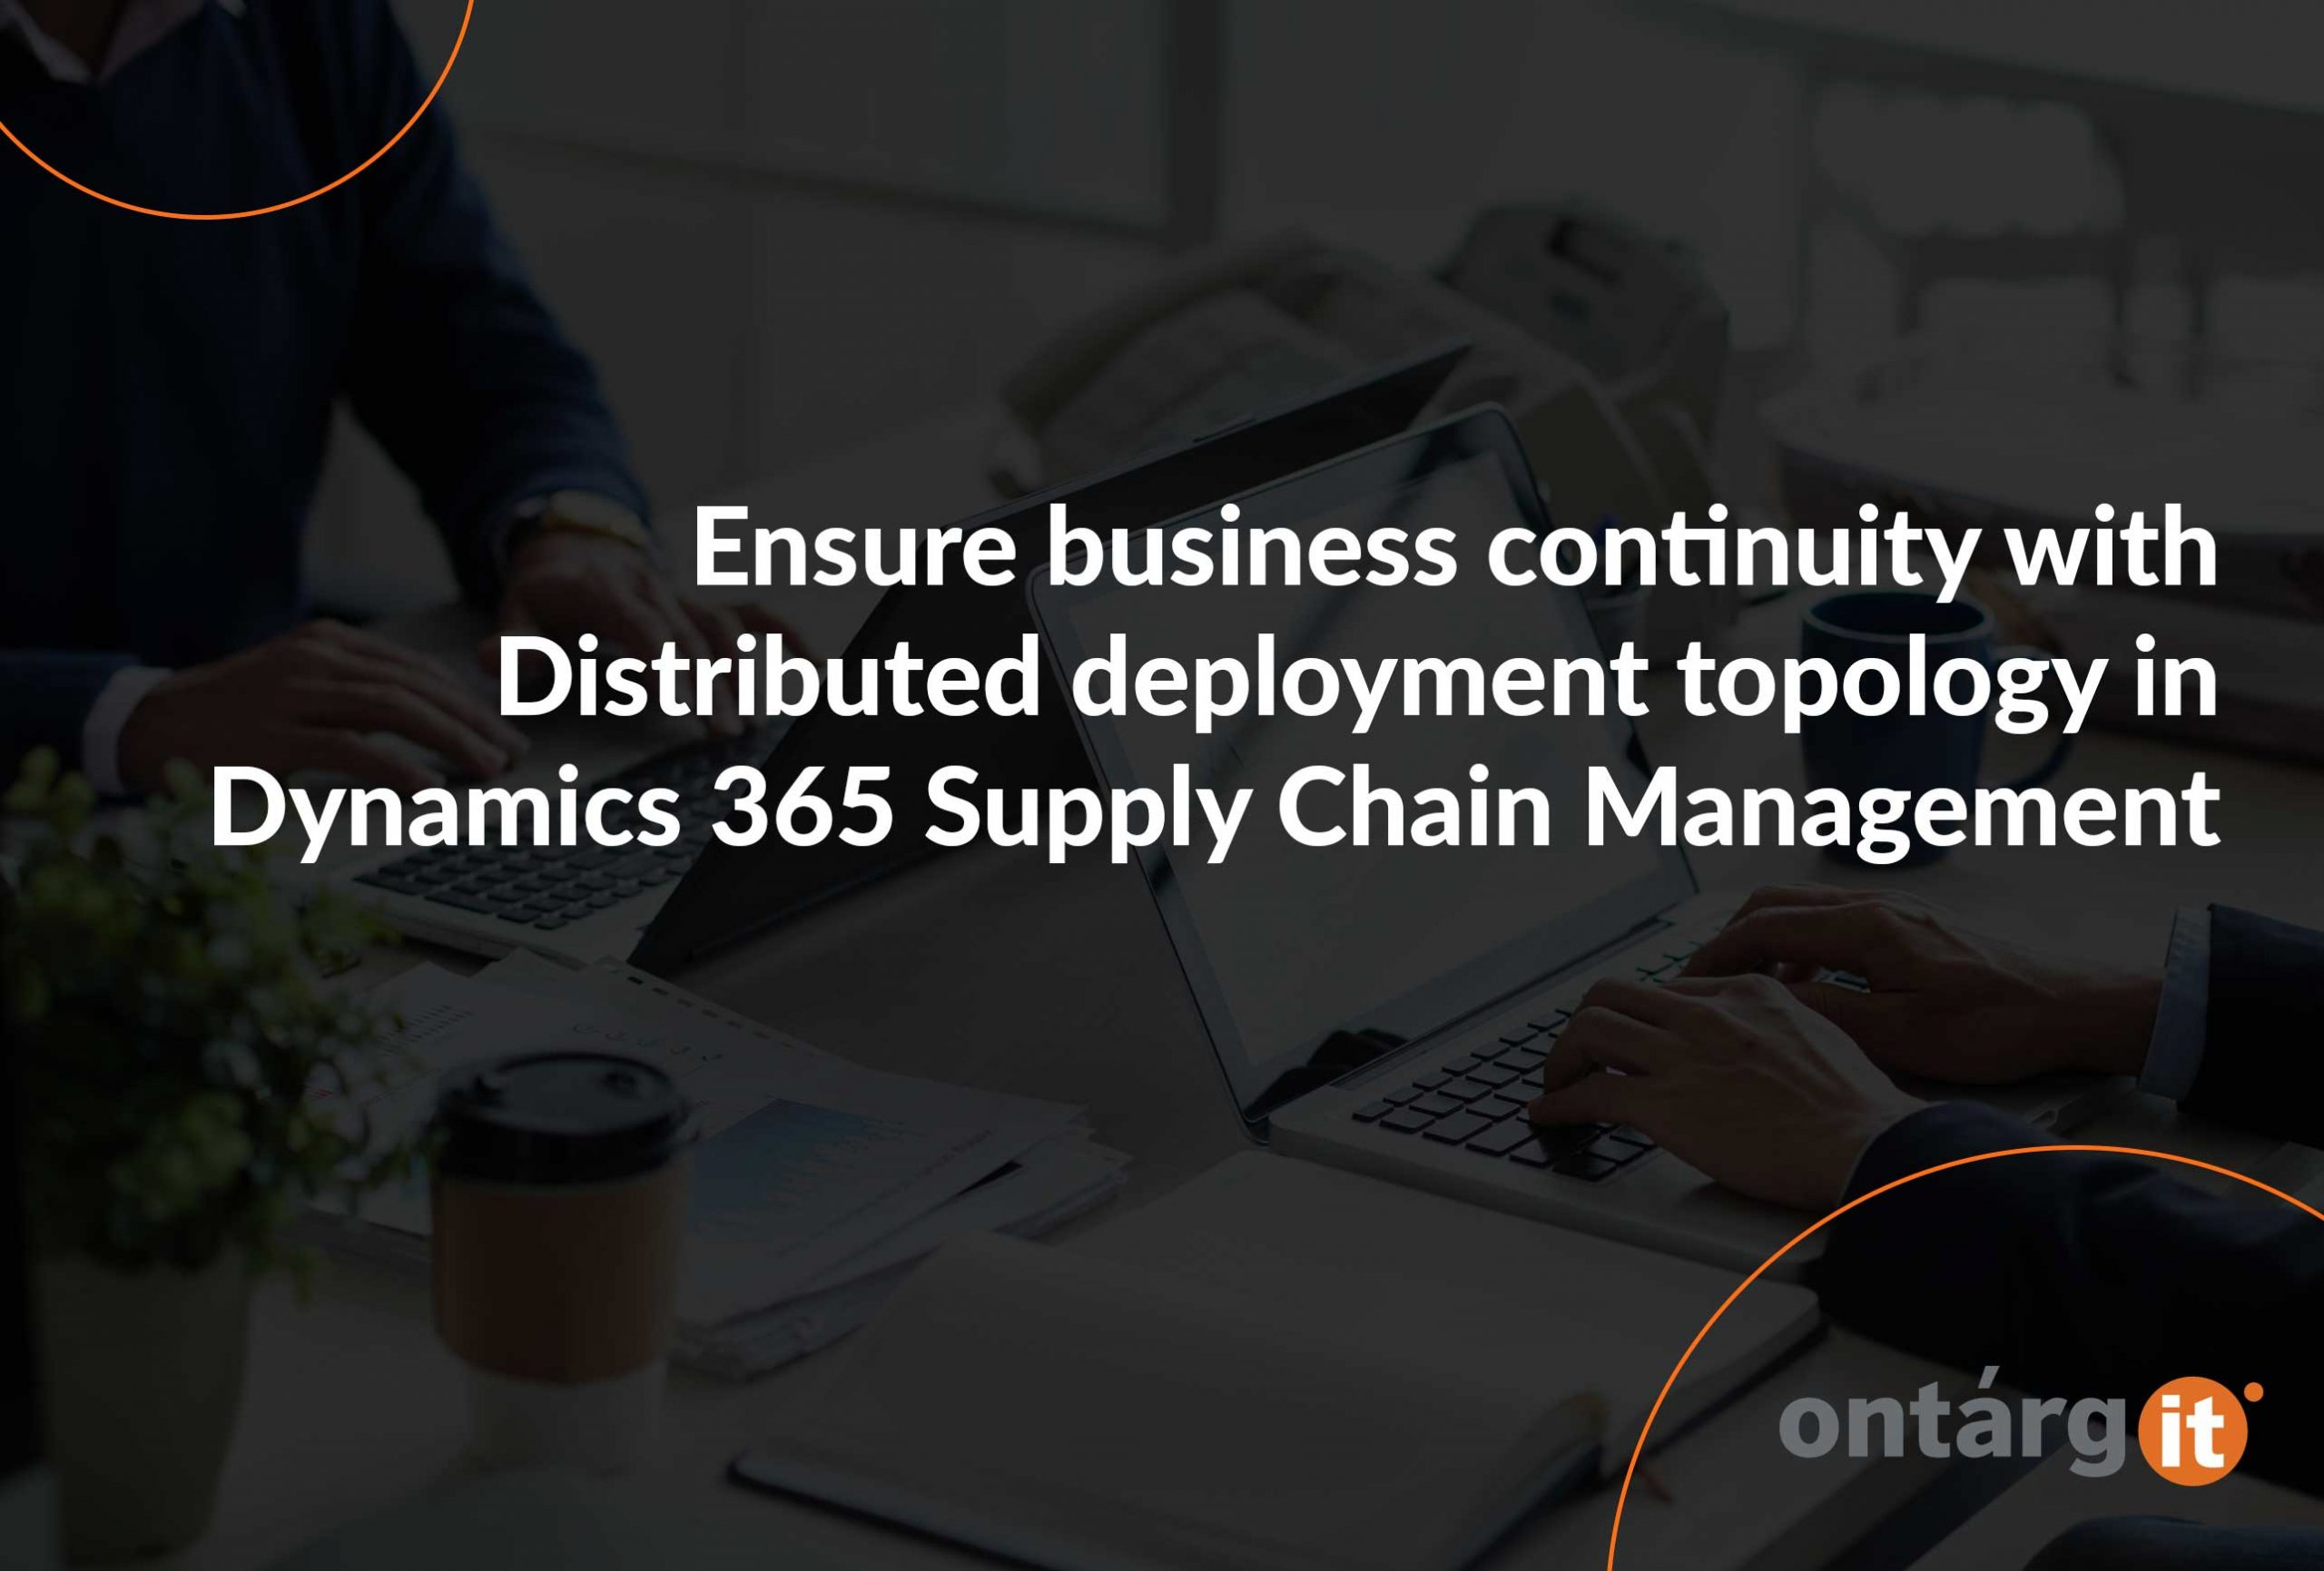 Ensure-business-continuity-with-Distributed-deployment-topology-in-Dynamics-365-Supply-Chain-Management